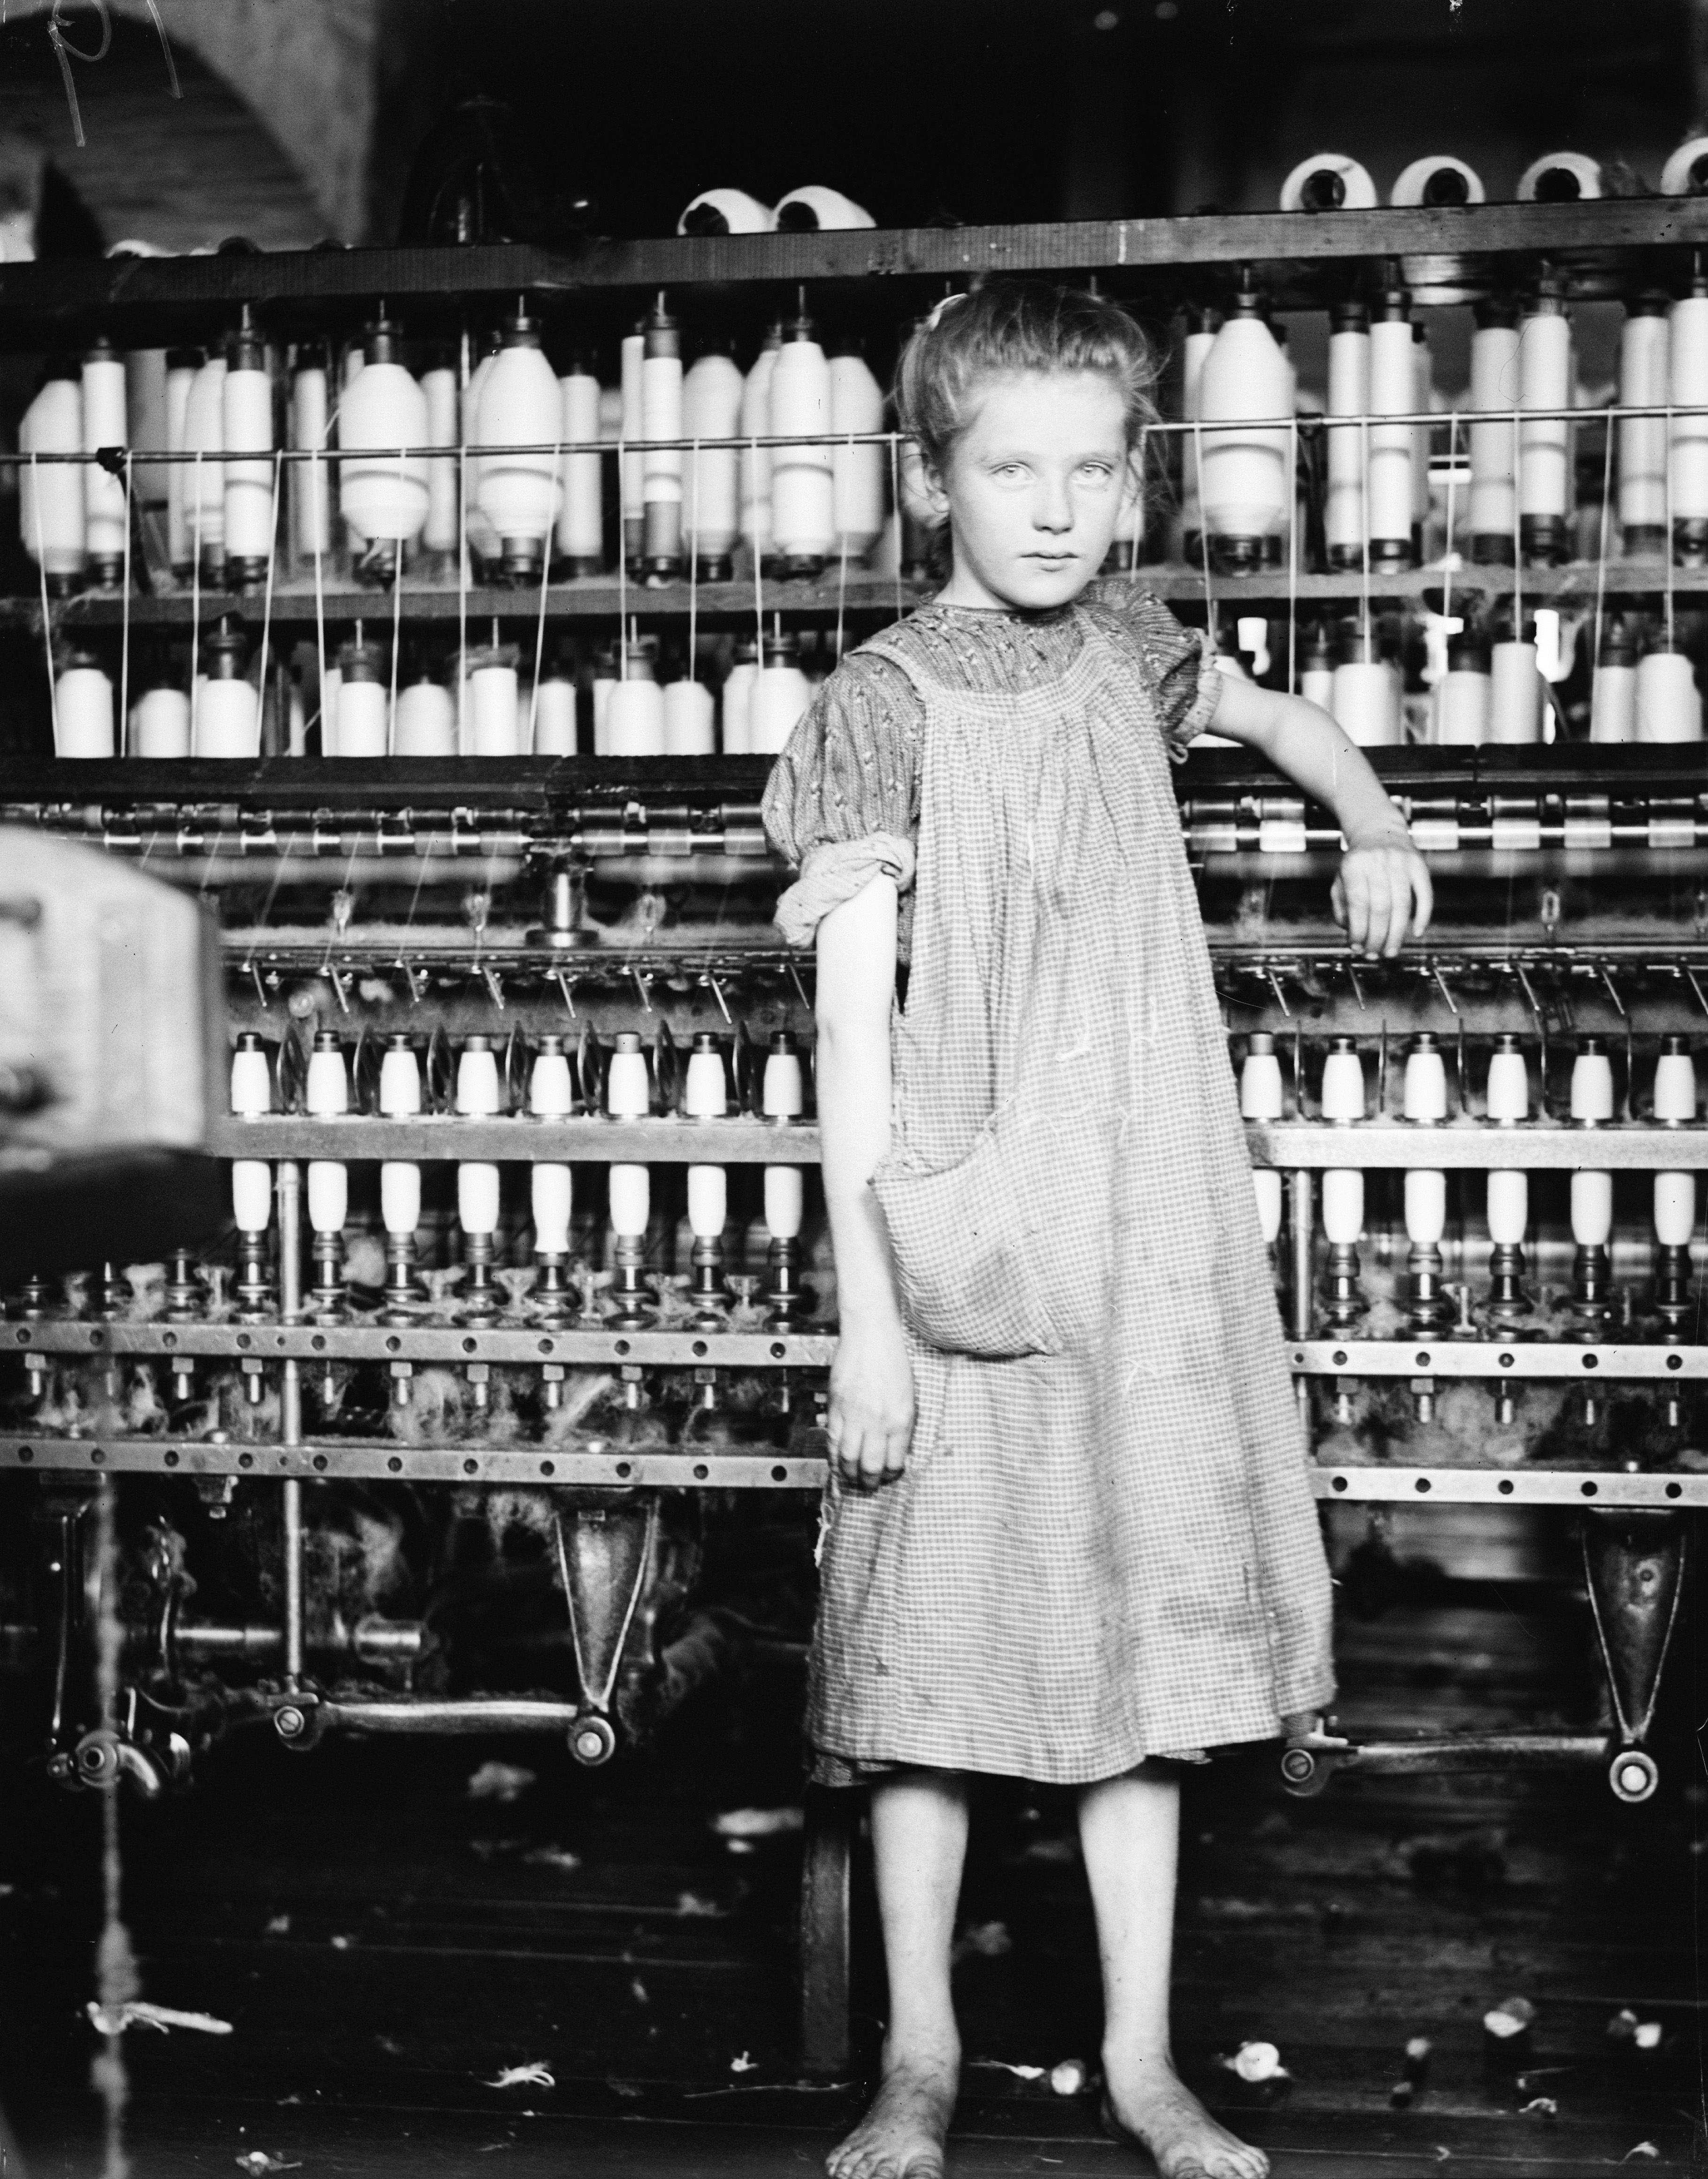 Child Factory Workers During The Industrial Revolution